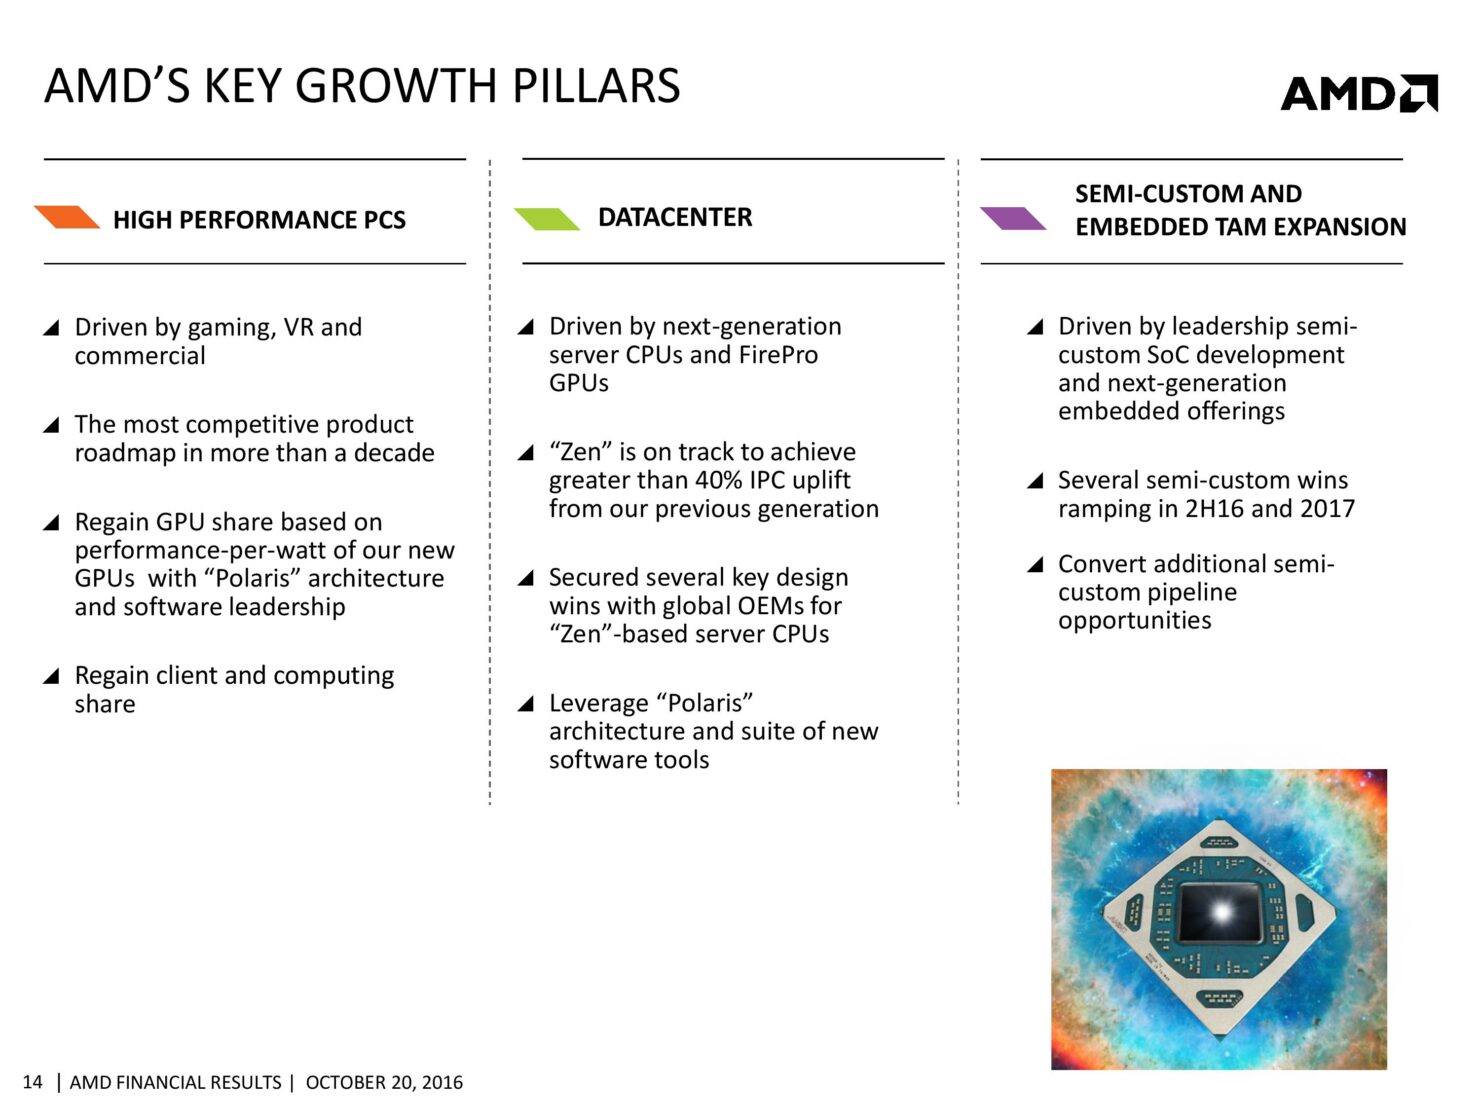 amd-cfo-commentary-slides-q3-16-page-014